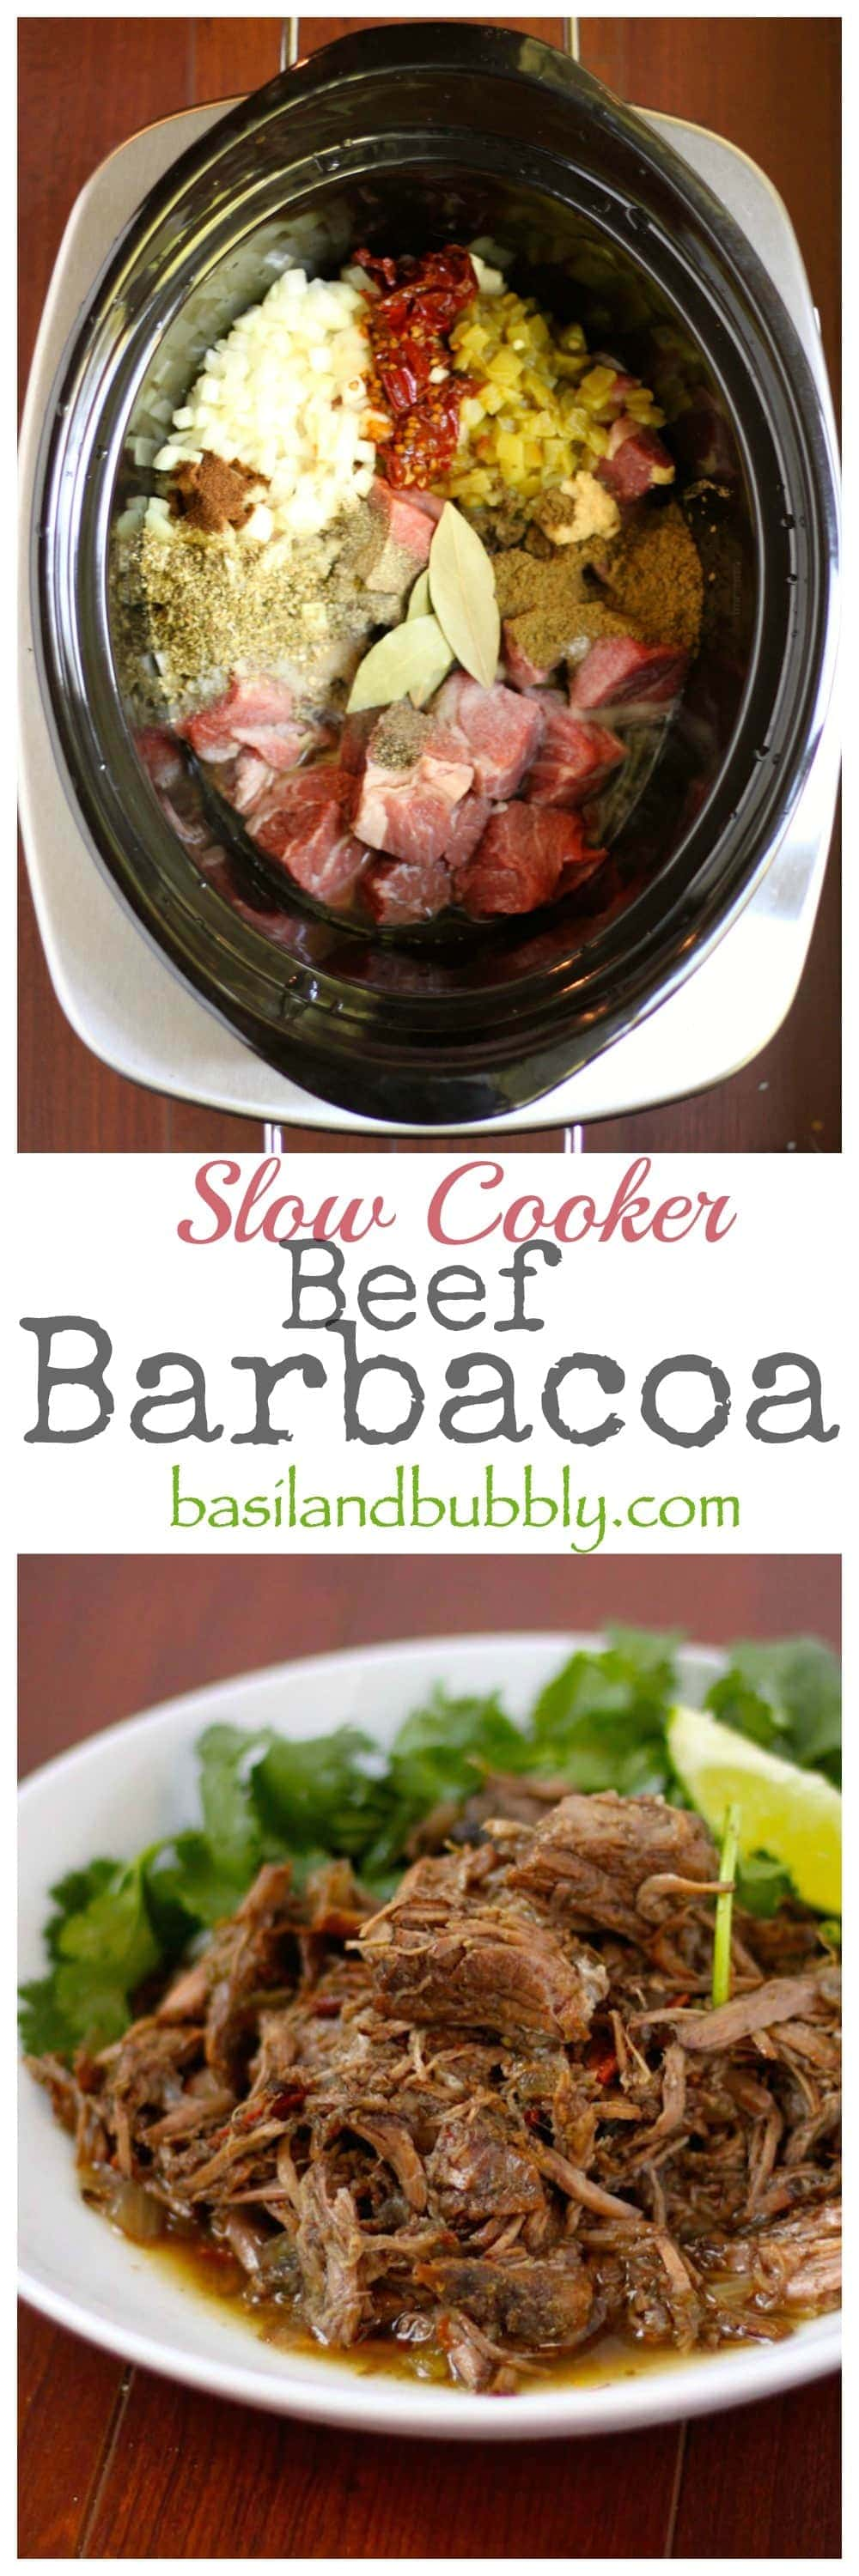 Crock Pot Beef Barbacoa